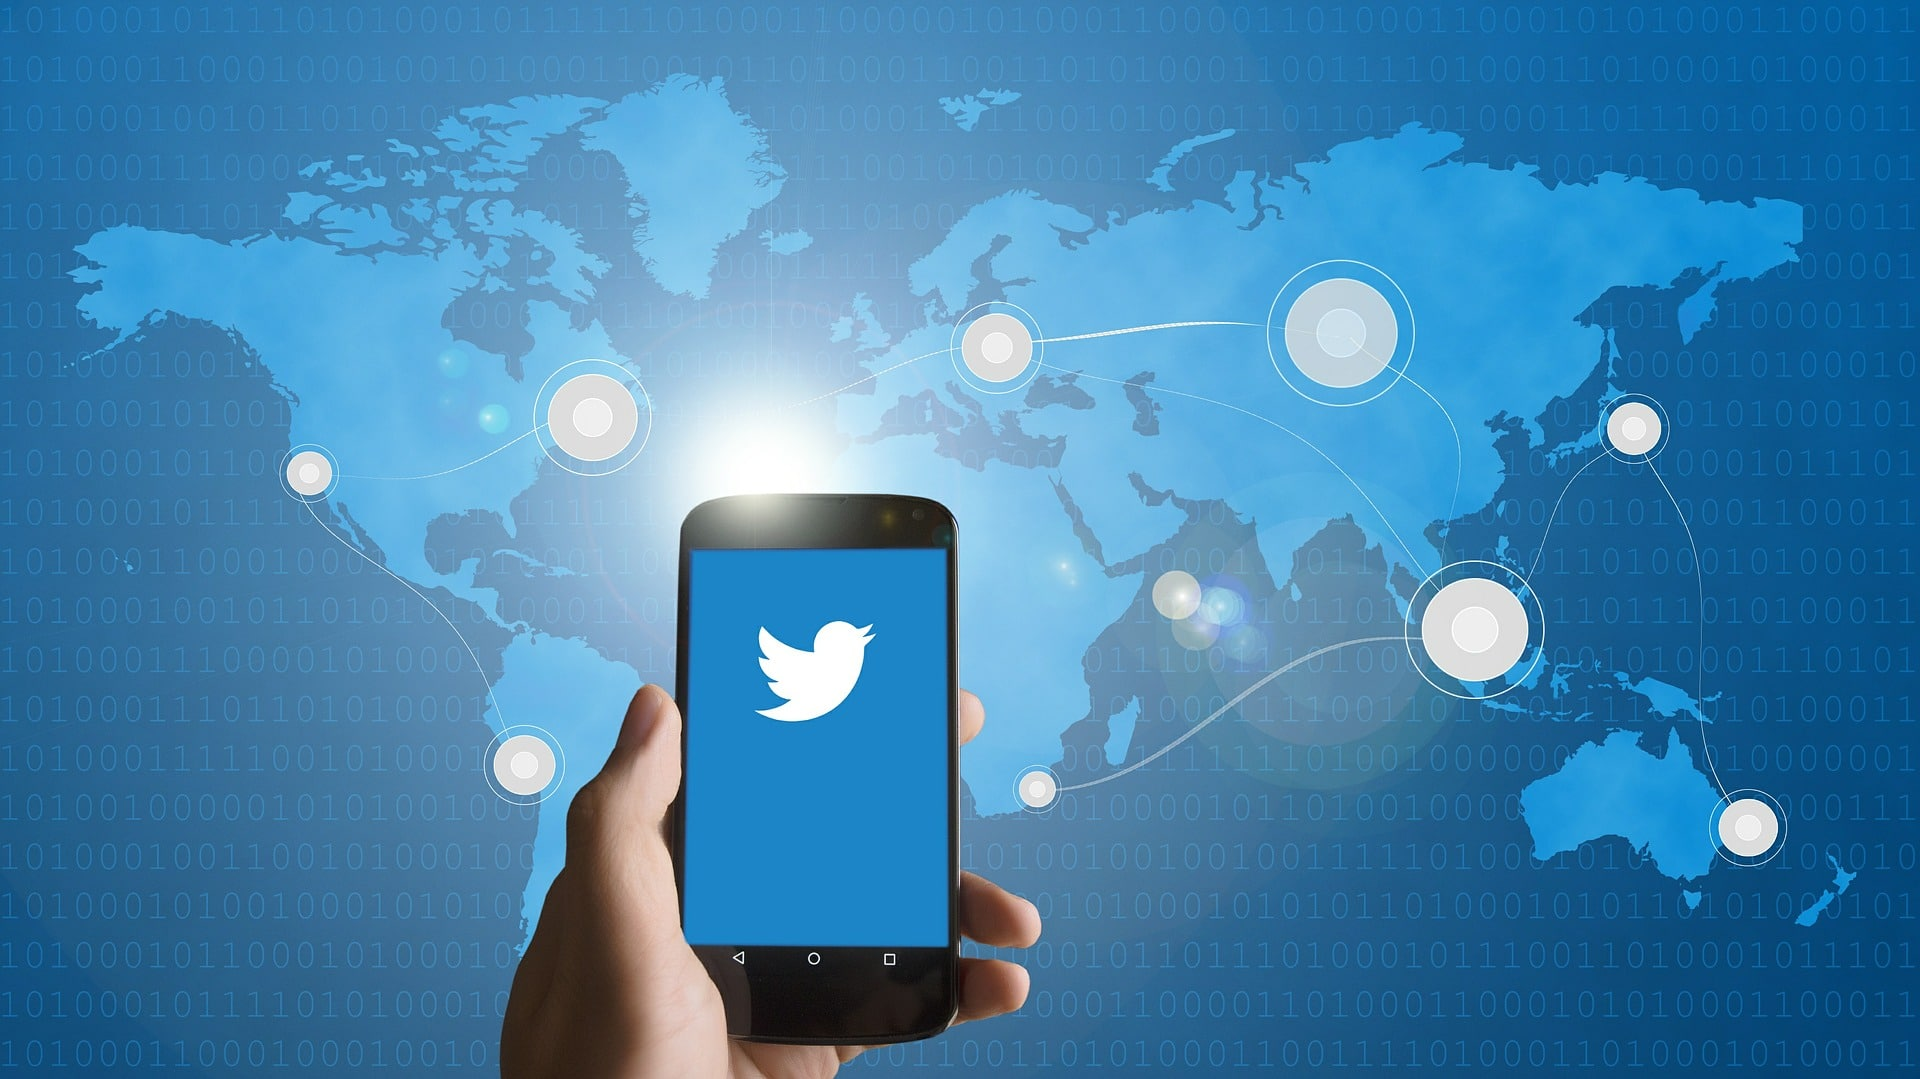 Twitter's social networking service